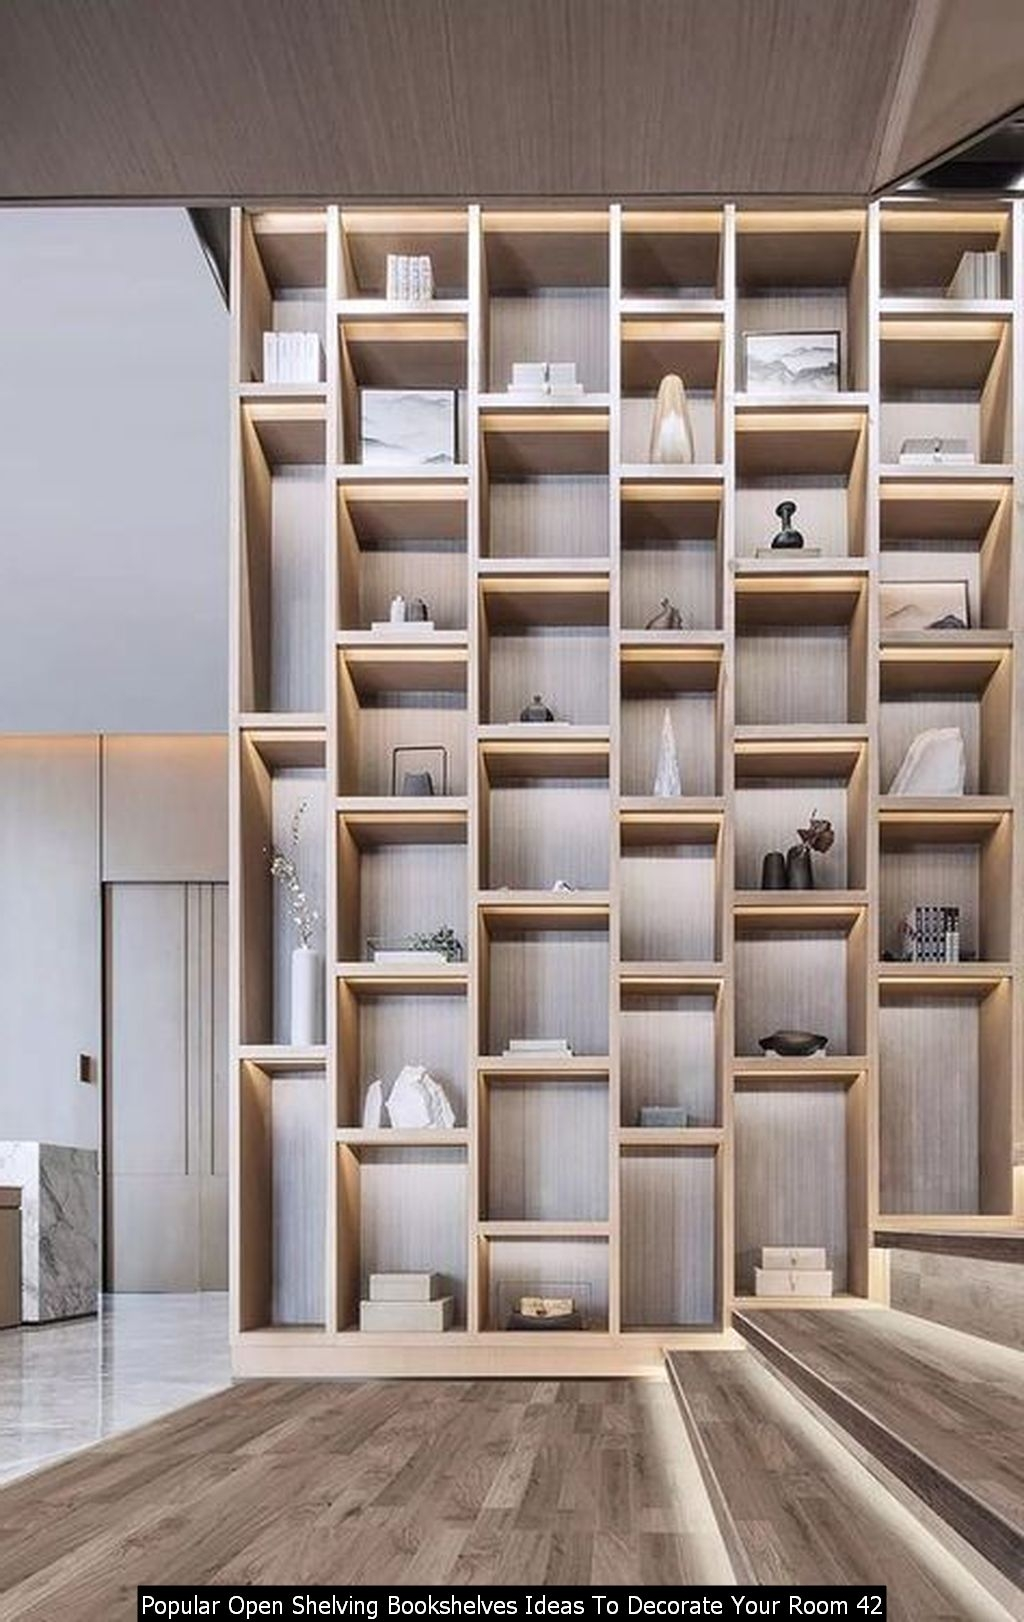 Popular Open Shelving Bookshelves Ideas To Decorate Your Room 42